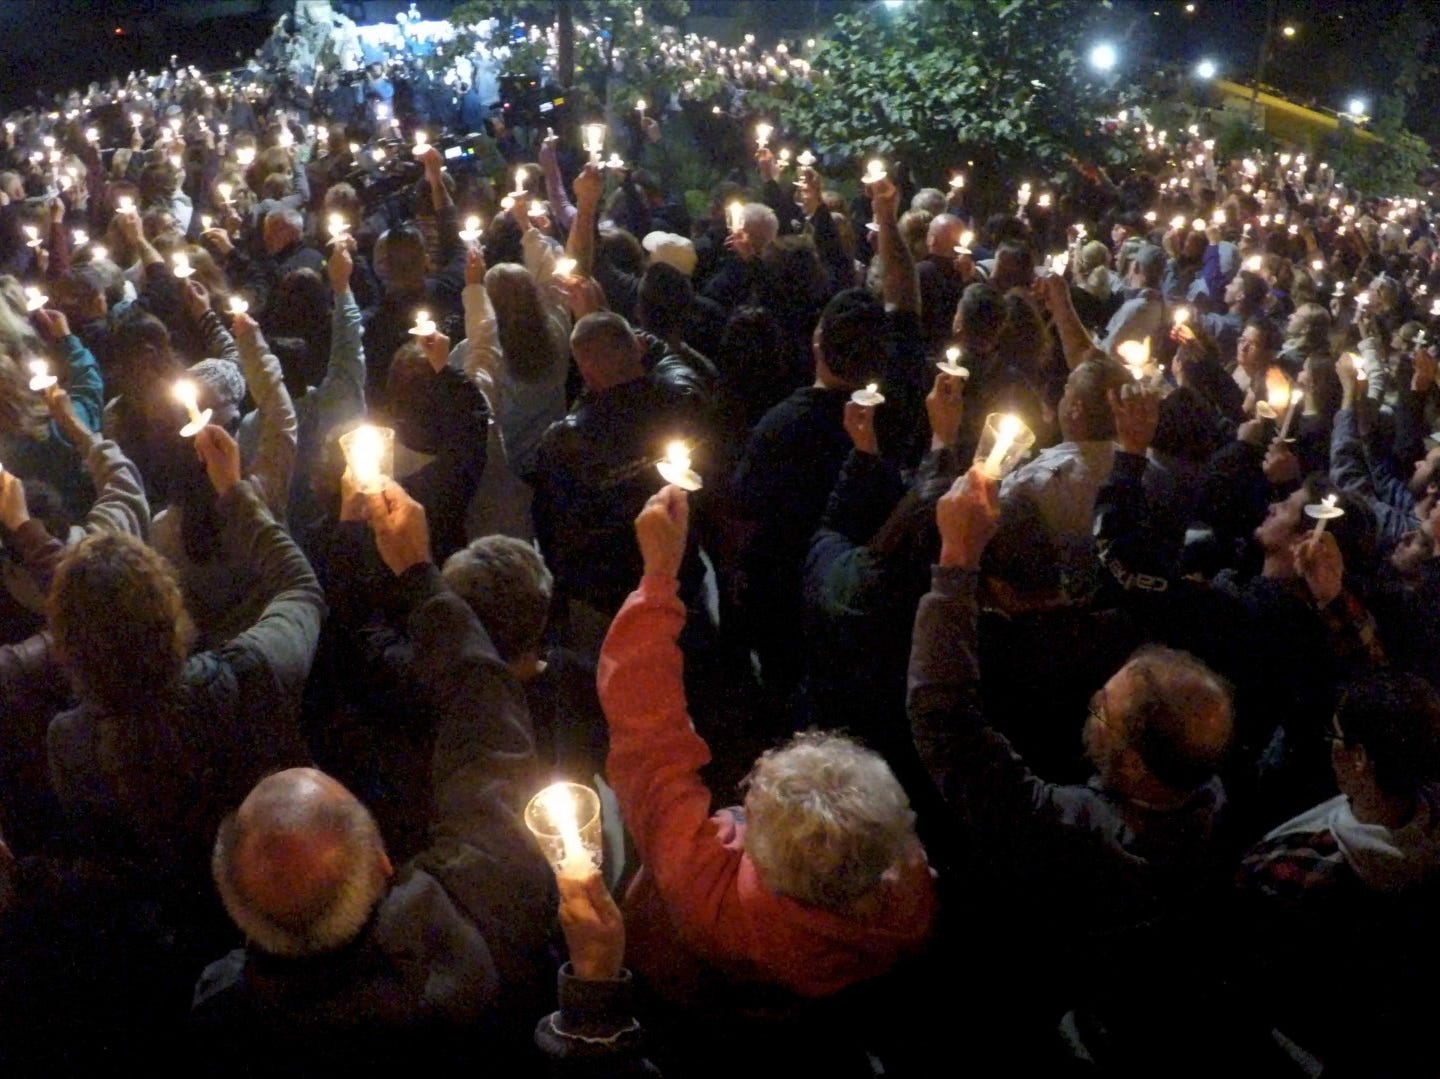 A vigil is held for the victims of the Schoharie limousine accident at the Gateway Overlook in Amsterdam, New York Oct 8, 2018